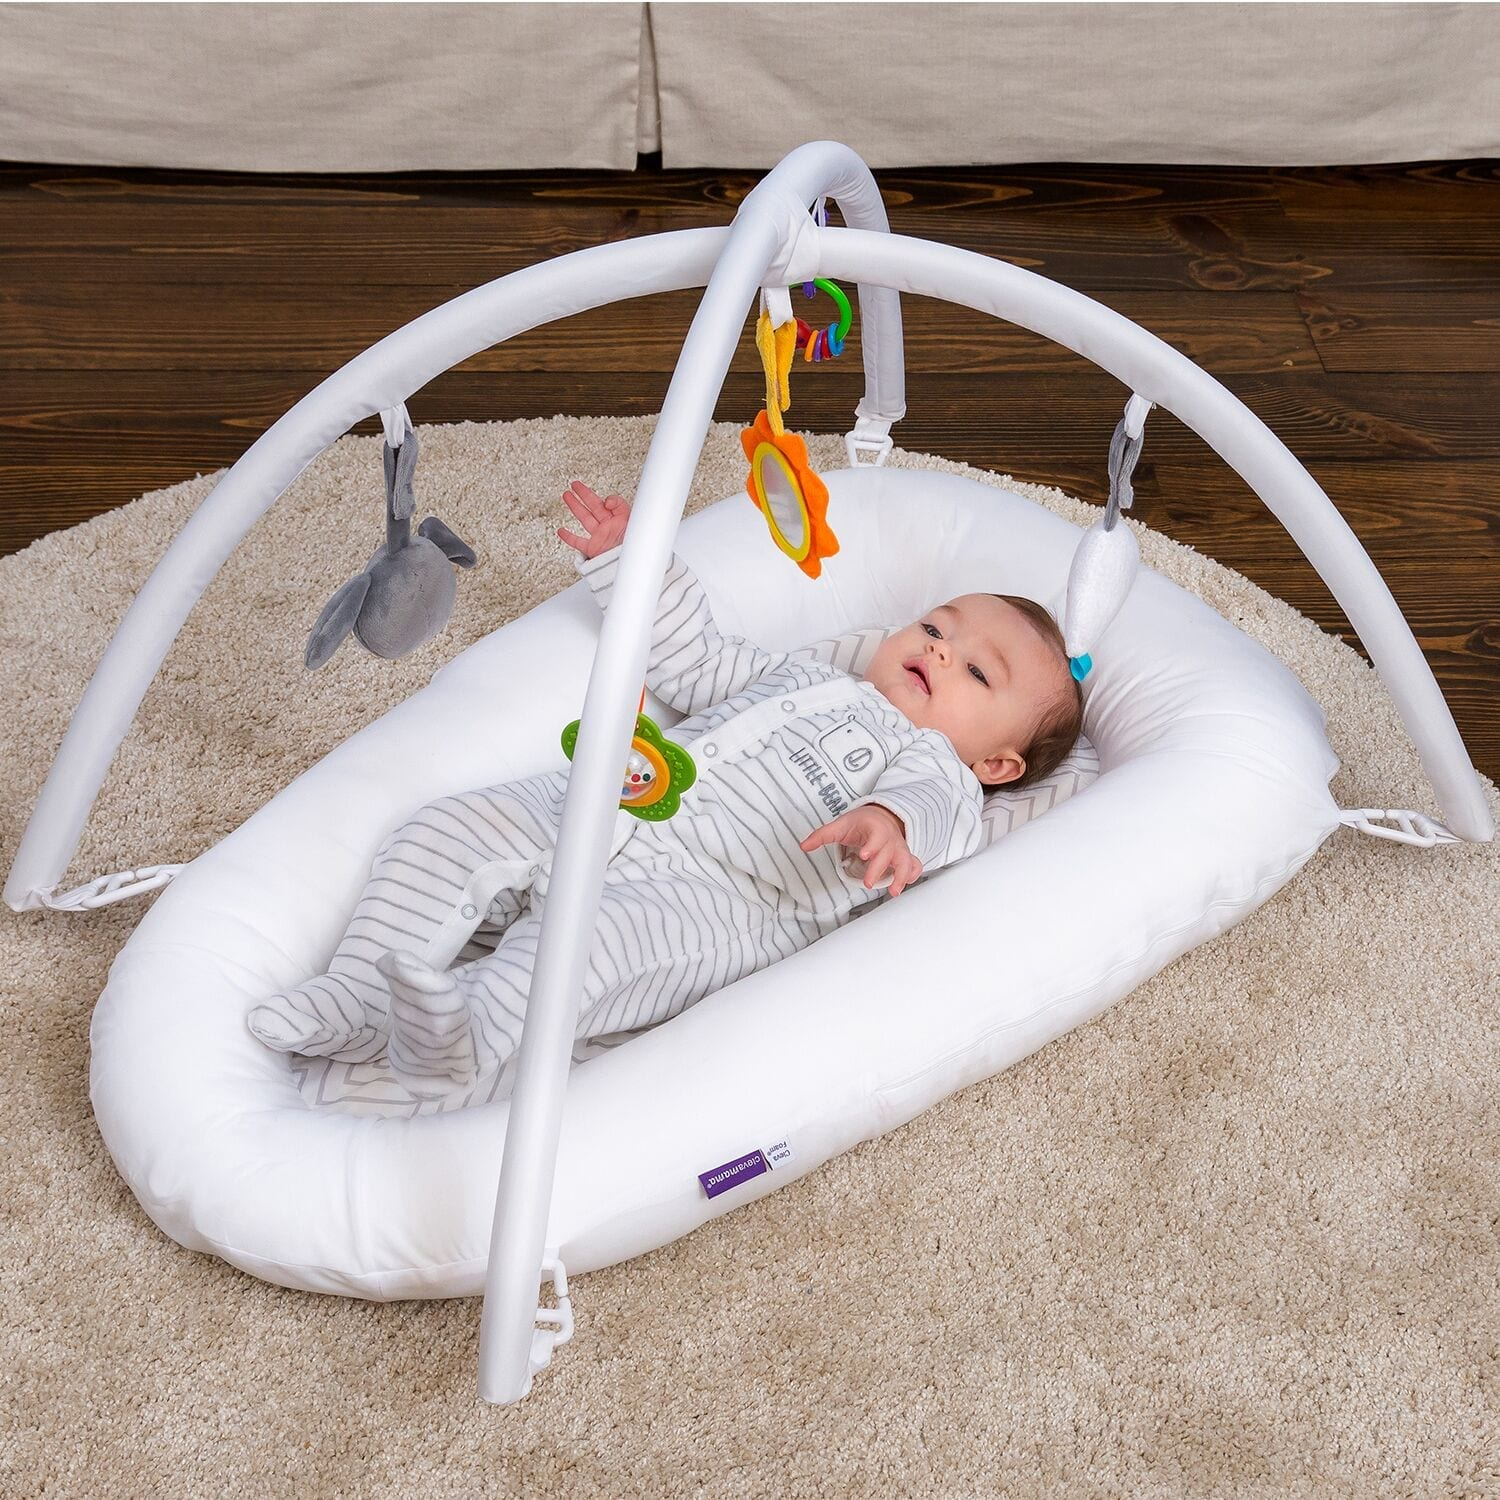 Clevasleep pod play arch-white product image